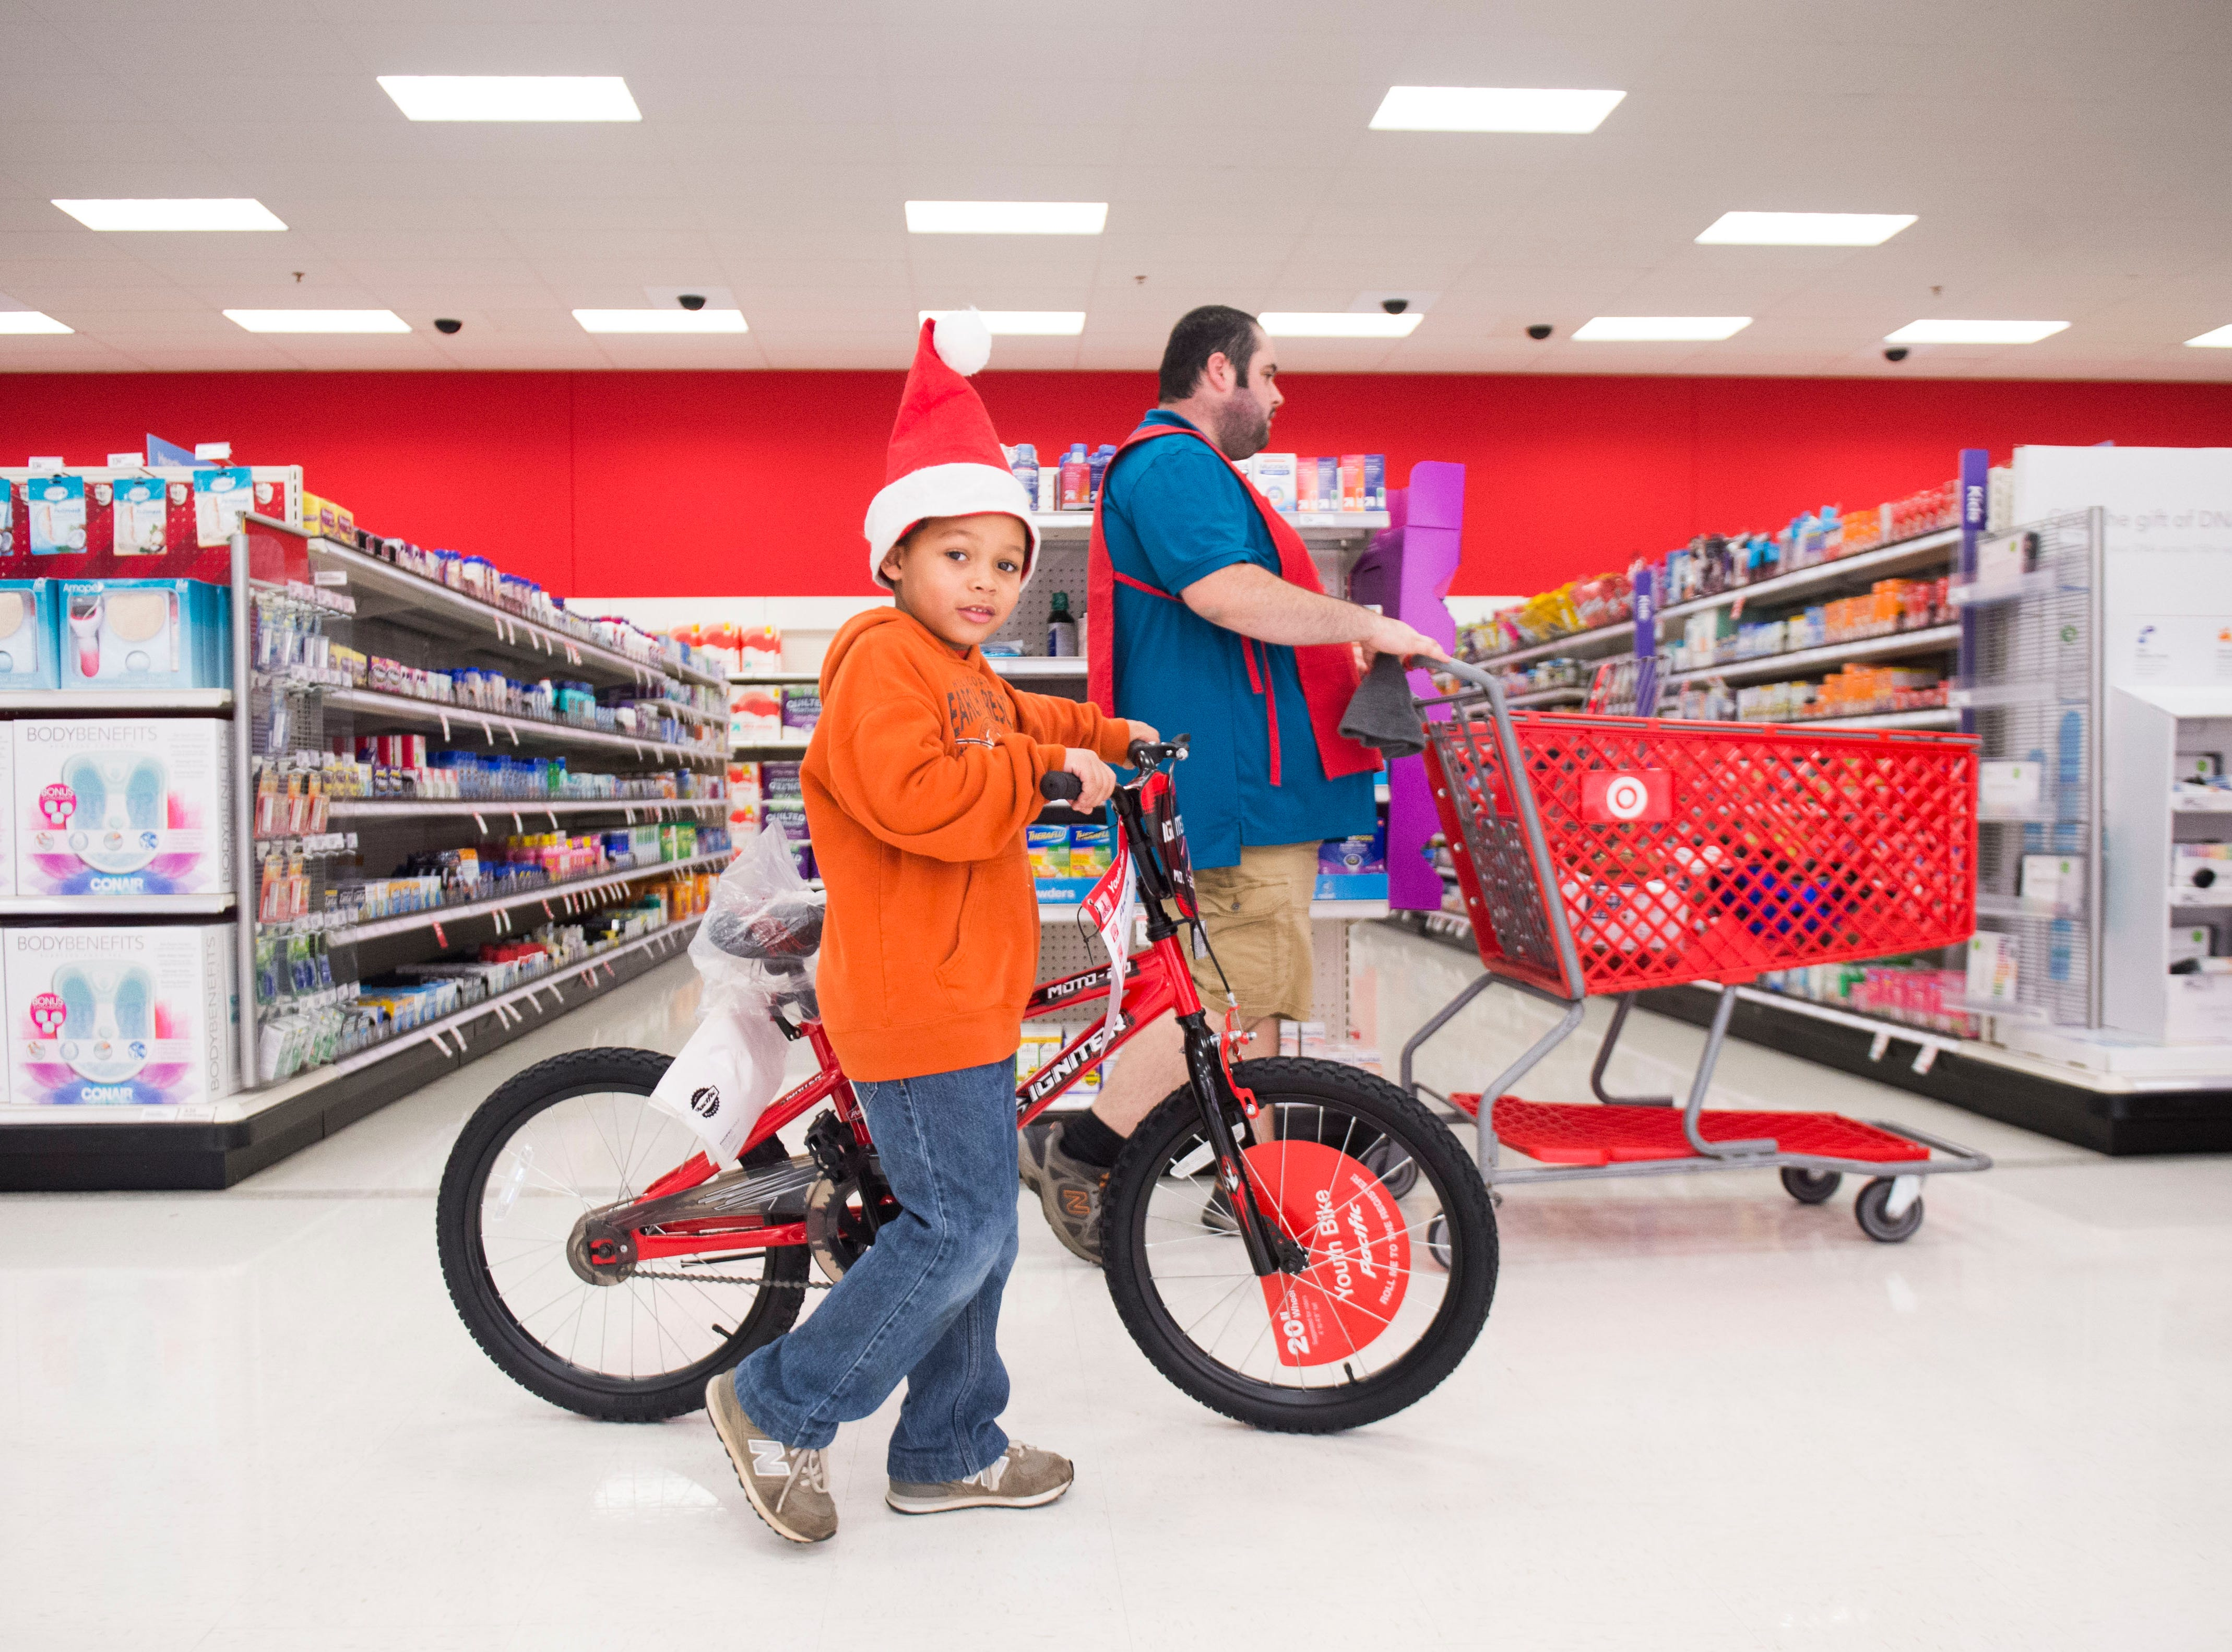 Javontae, 6, pushes his bike towards the cash register at the Target on Clinton Highway during the annual Weigel's Family Christmas Saturday, Dec. 1, 2018. This is the 21st year Weigel's has held the shopping spree for local underprivileged children.